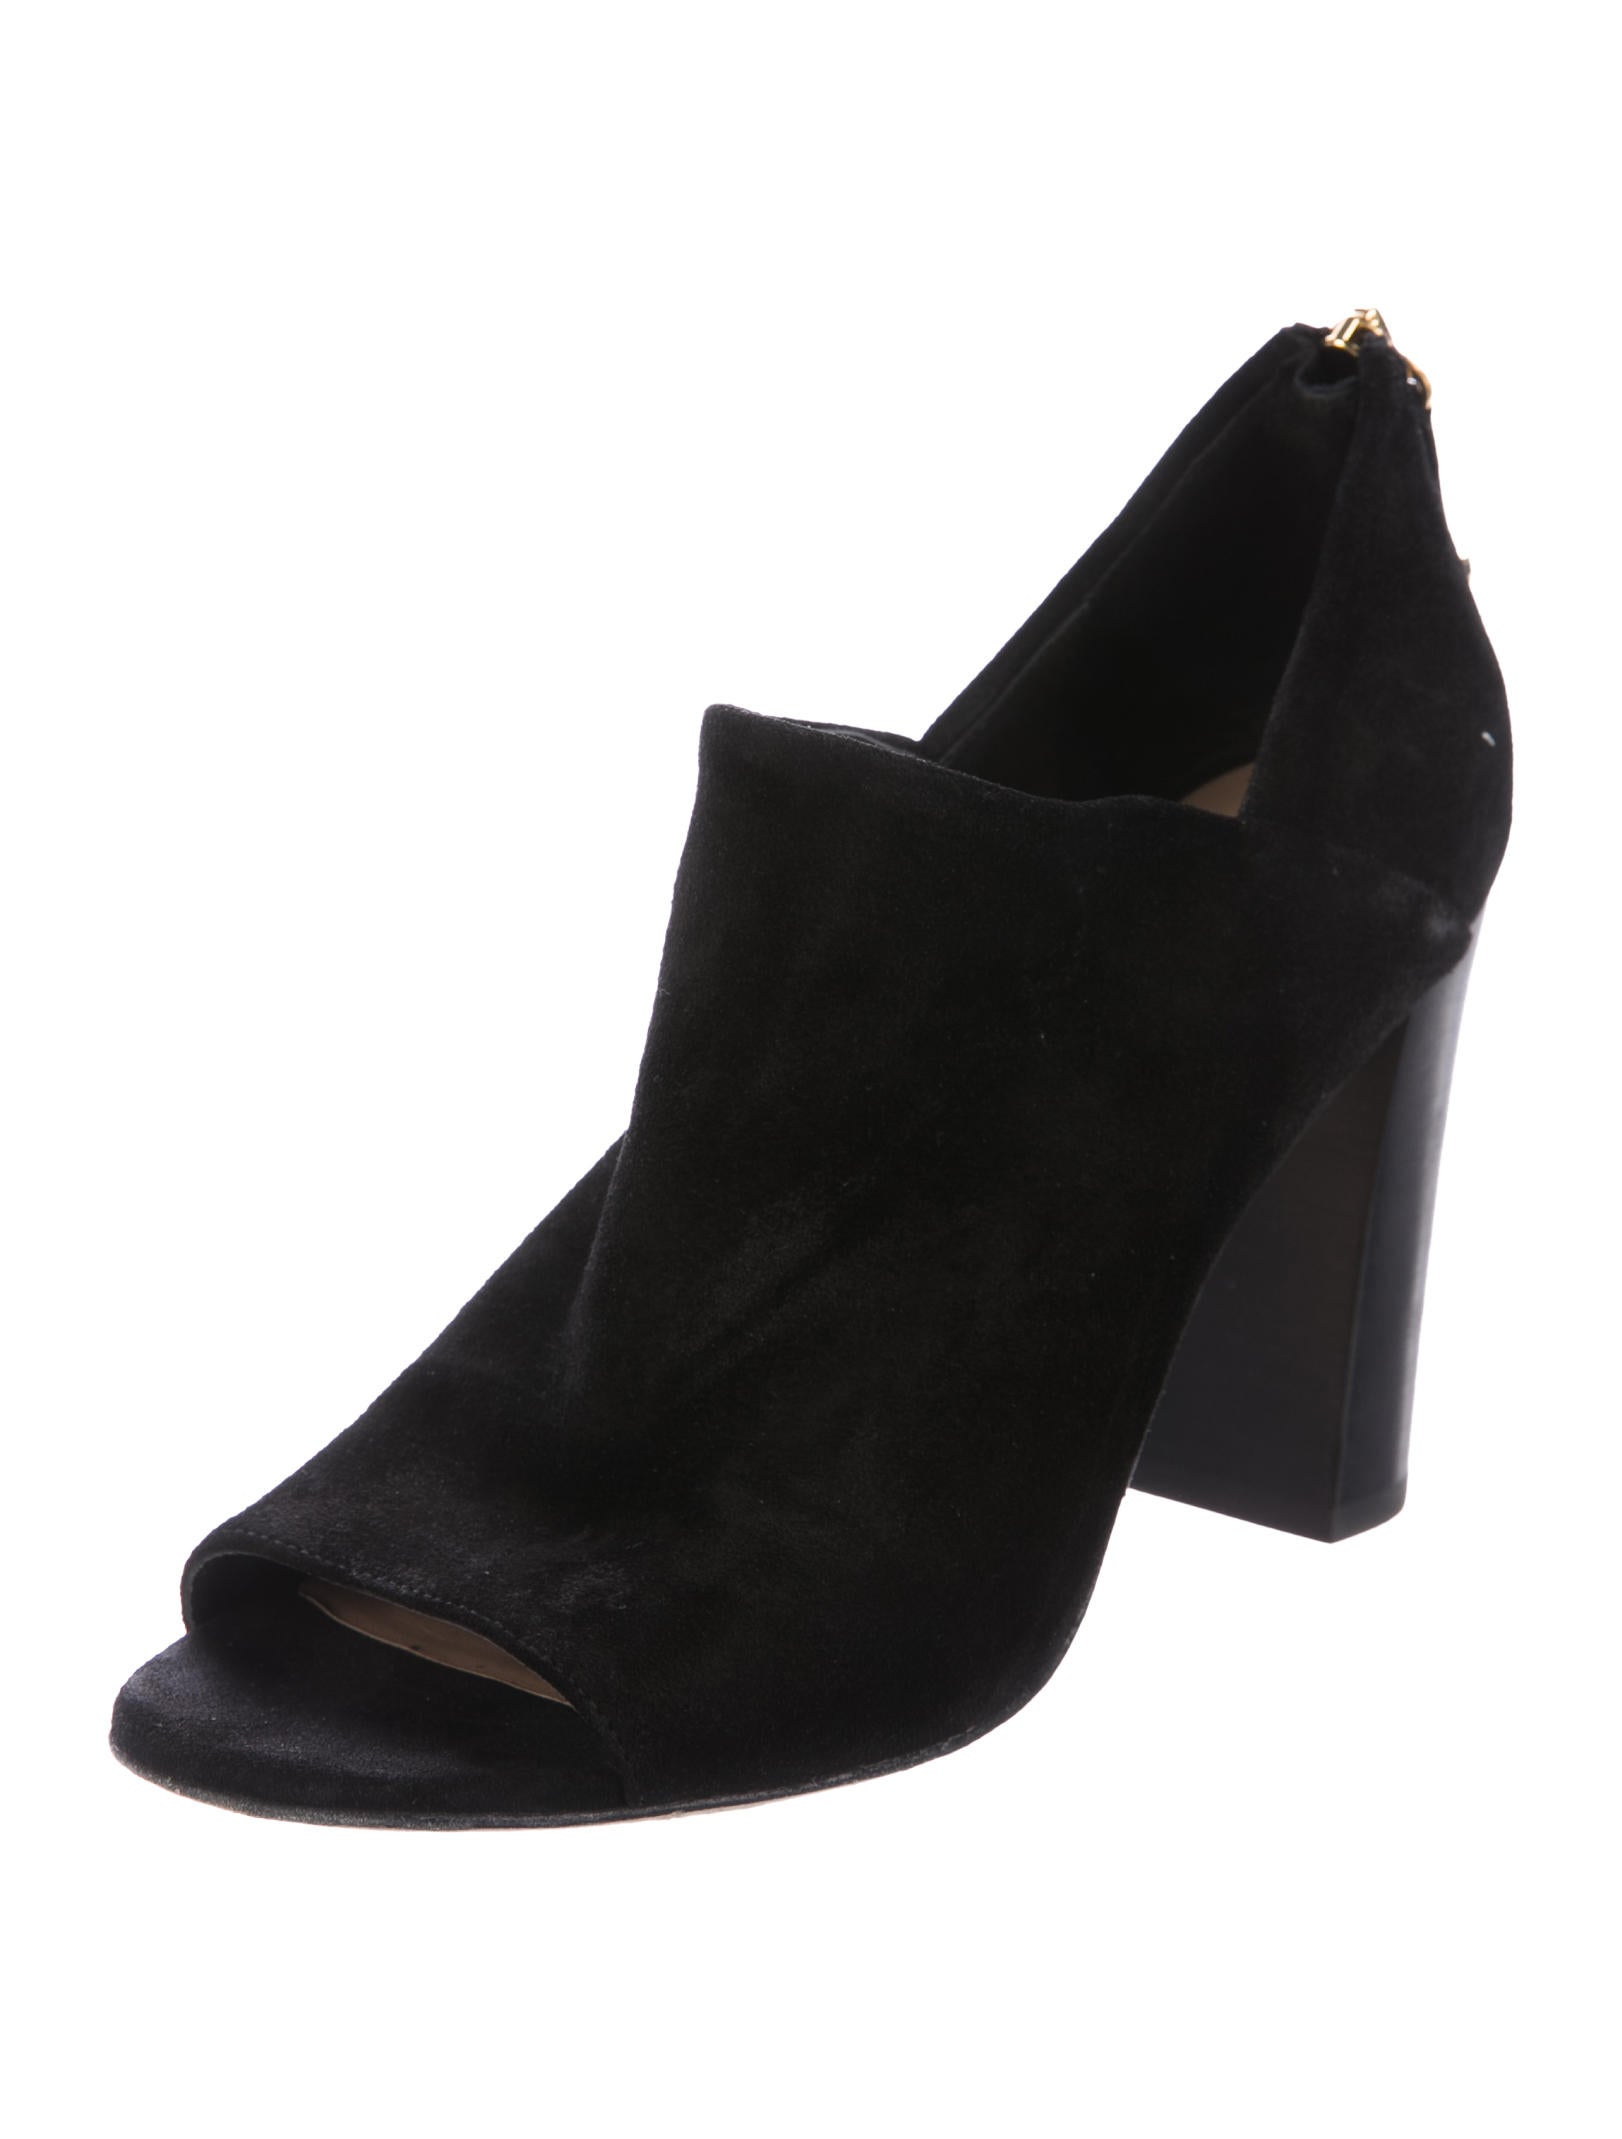 diane furstenberg peep toe suede ankle boots shoes